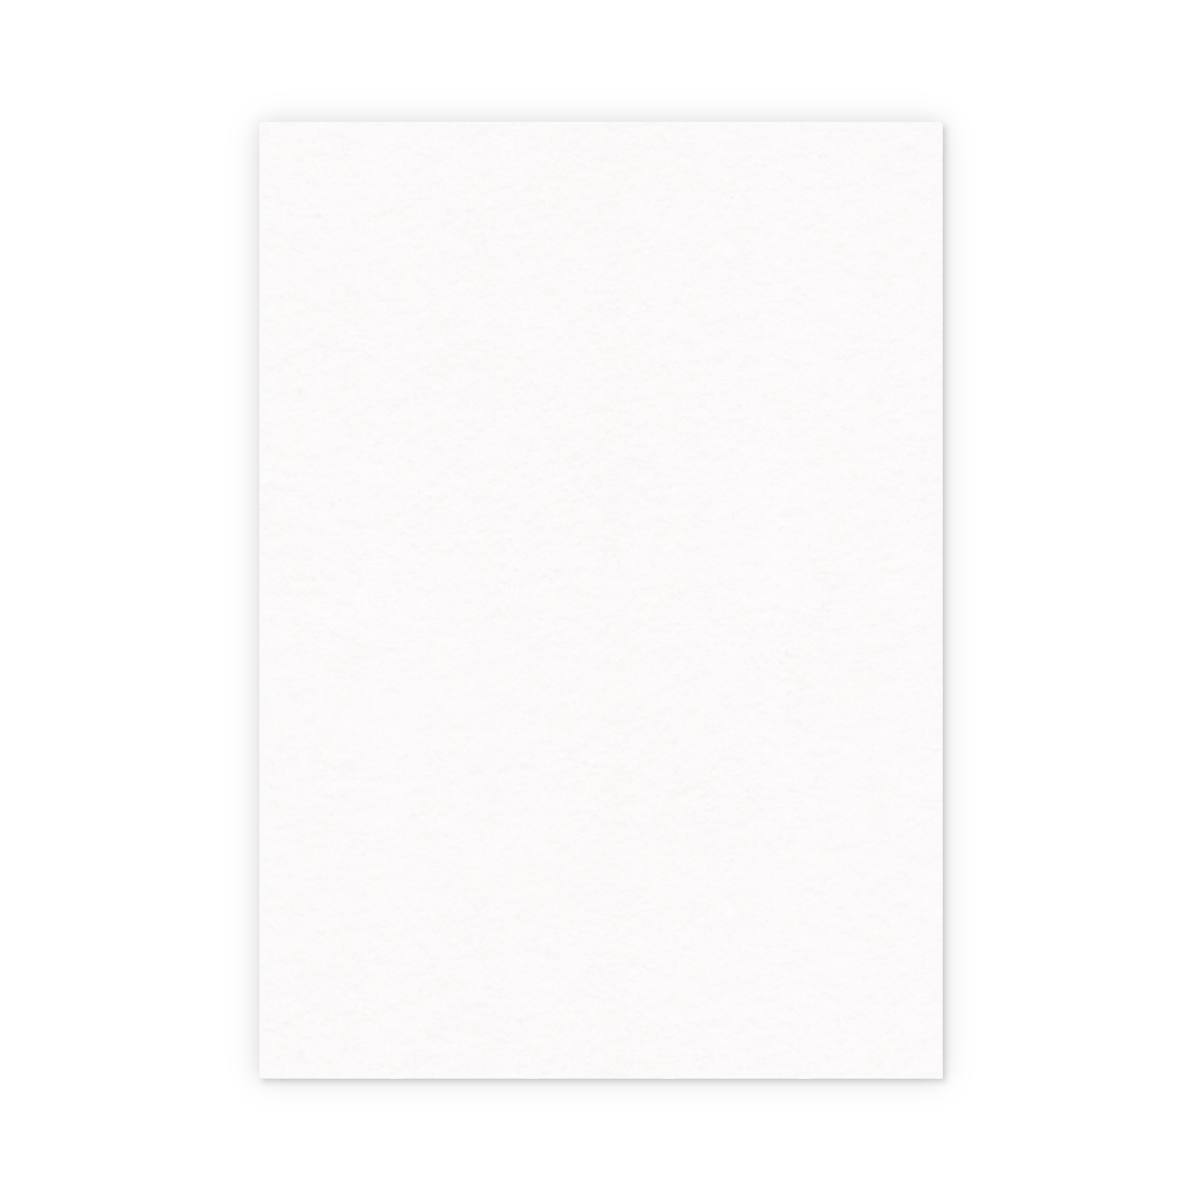 Https%3a%2f%2fwww.papier.com%2fproduct image%2f69818%2f4%2fminimal greenery 16520 arriere 1555273771.png?ixlib=rb 1.1